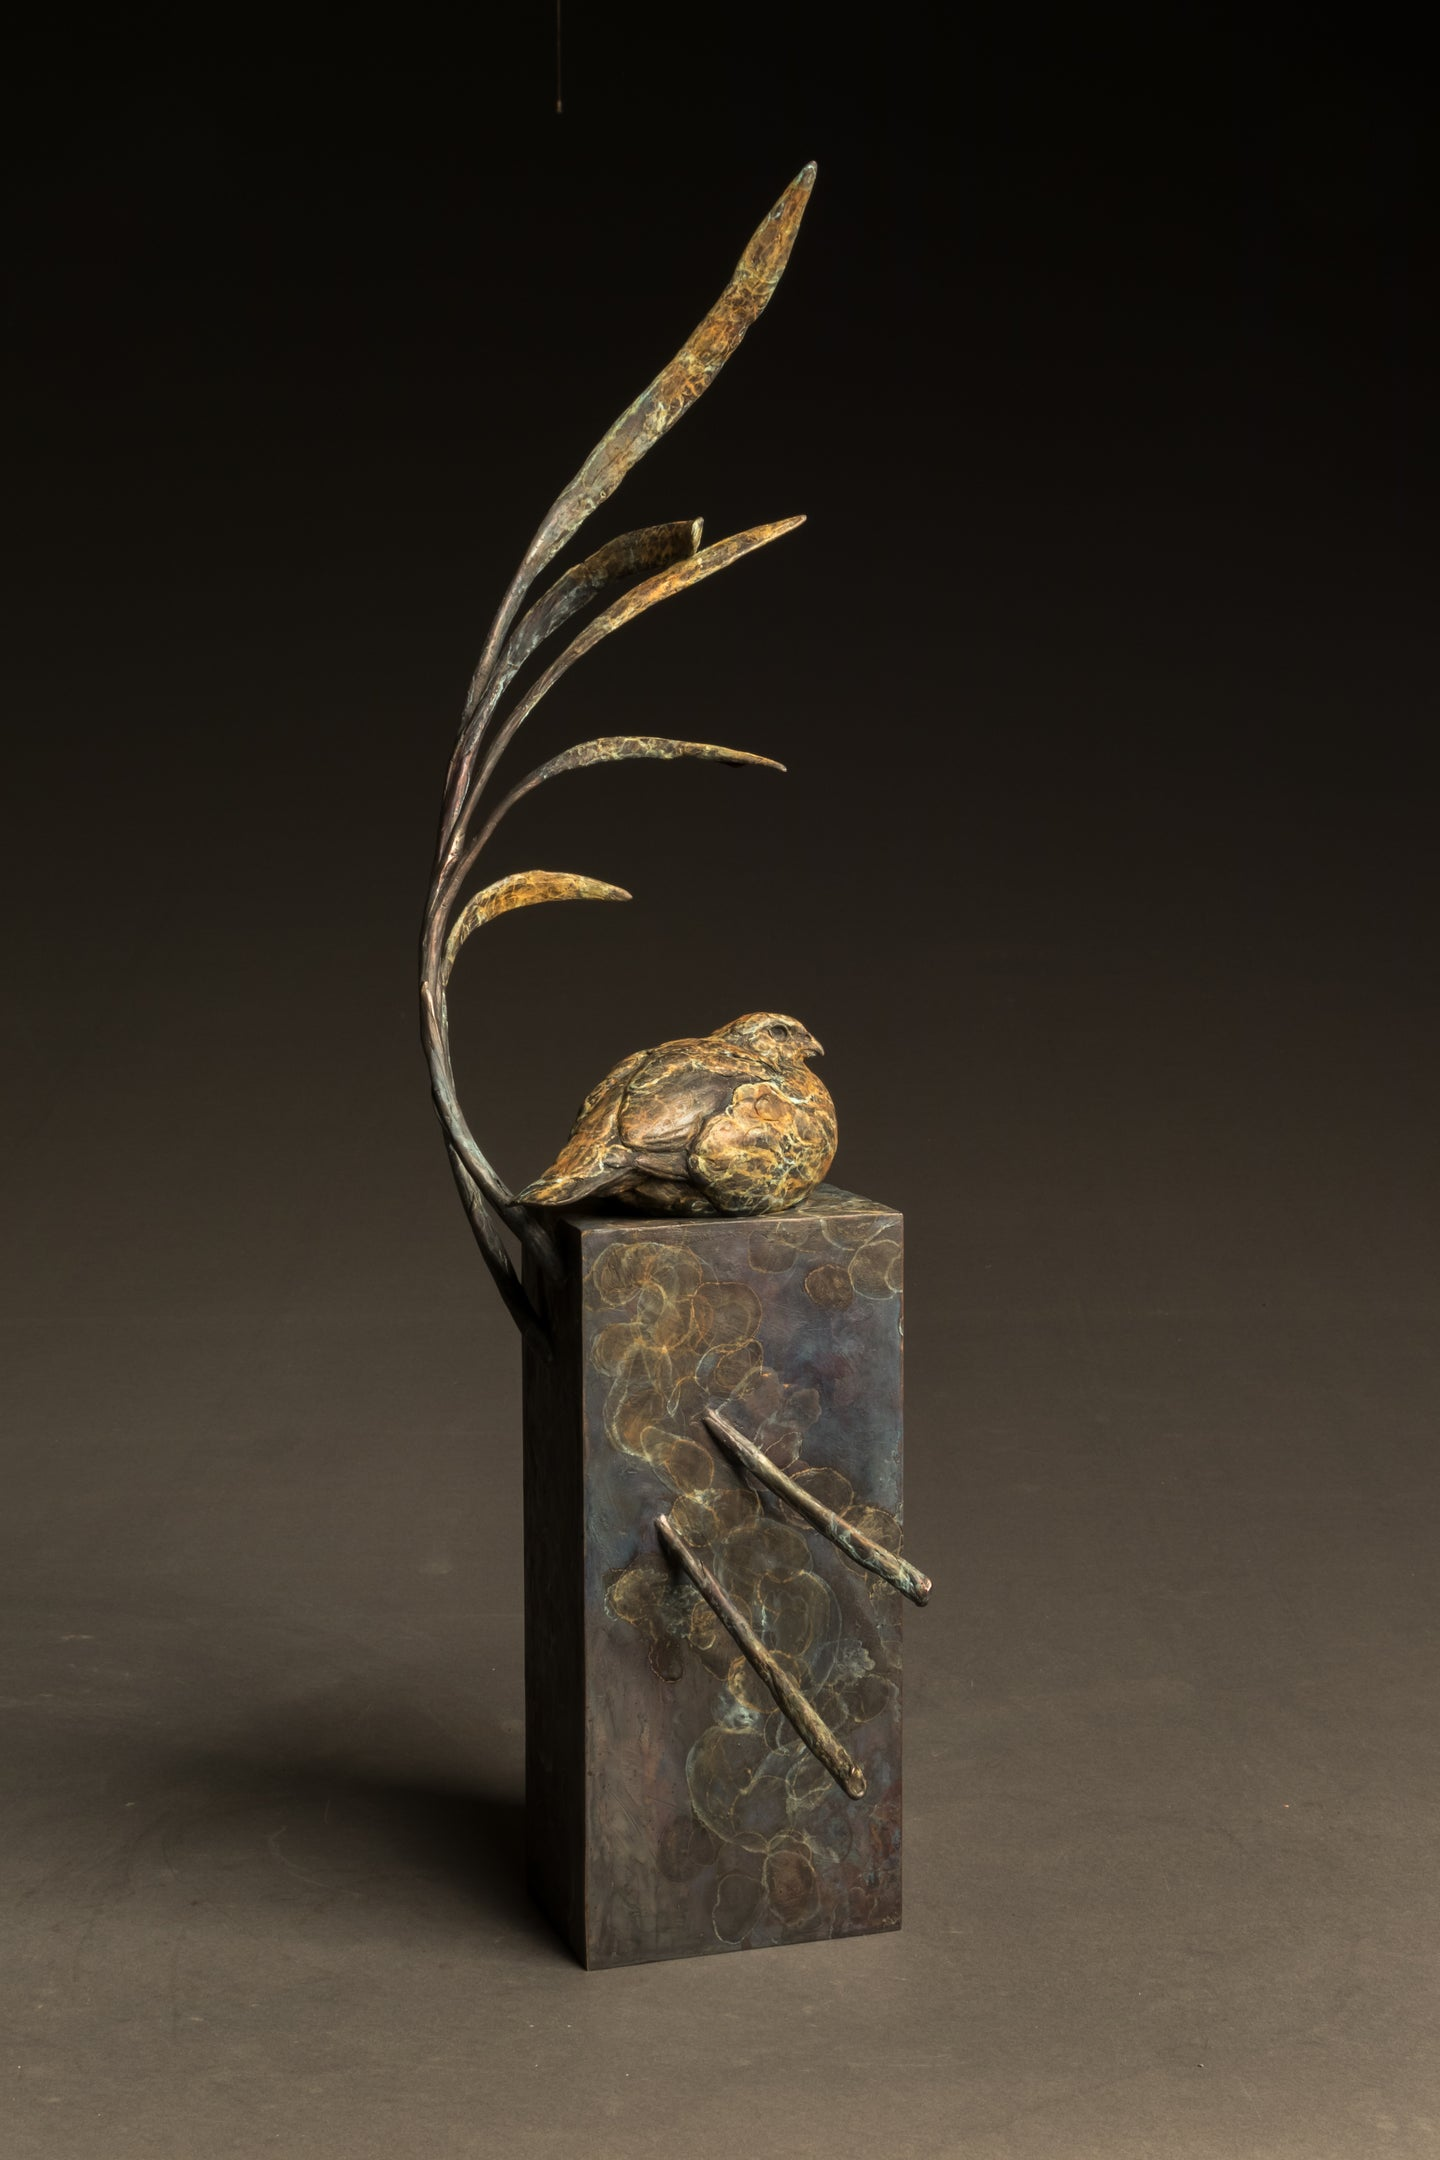 Stefan Savides - Summer Breeze-Bob White Quail - Limited Edition Sculpture